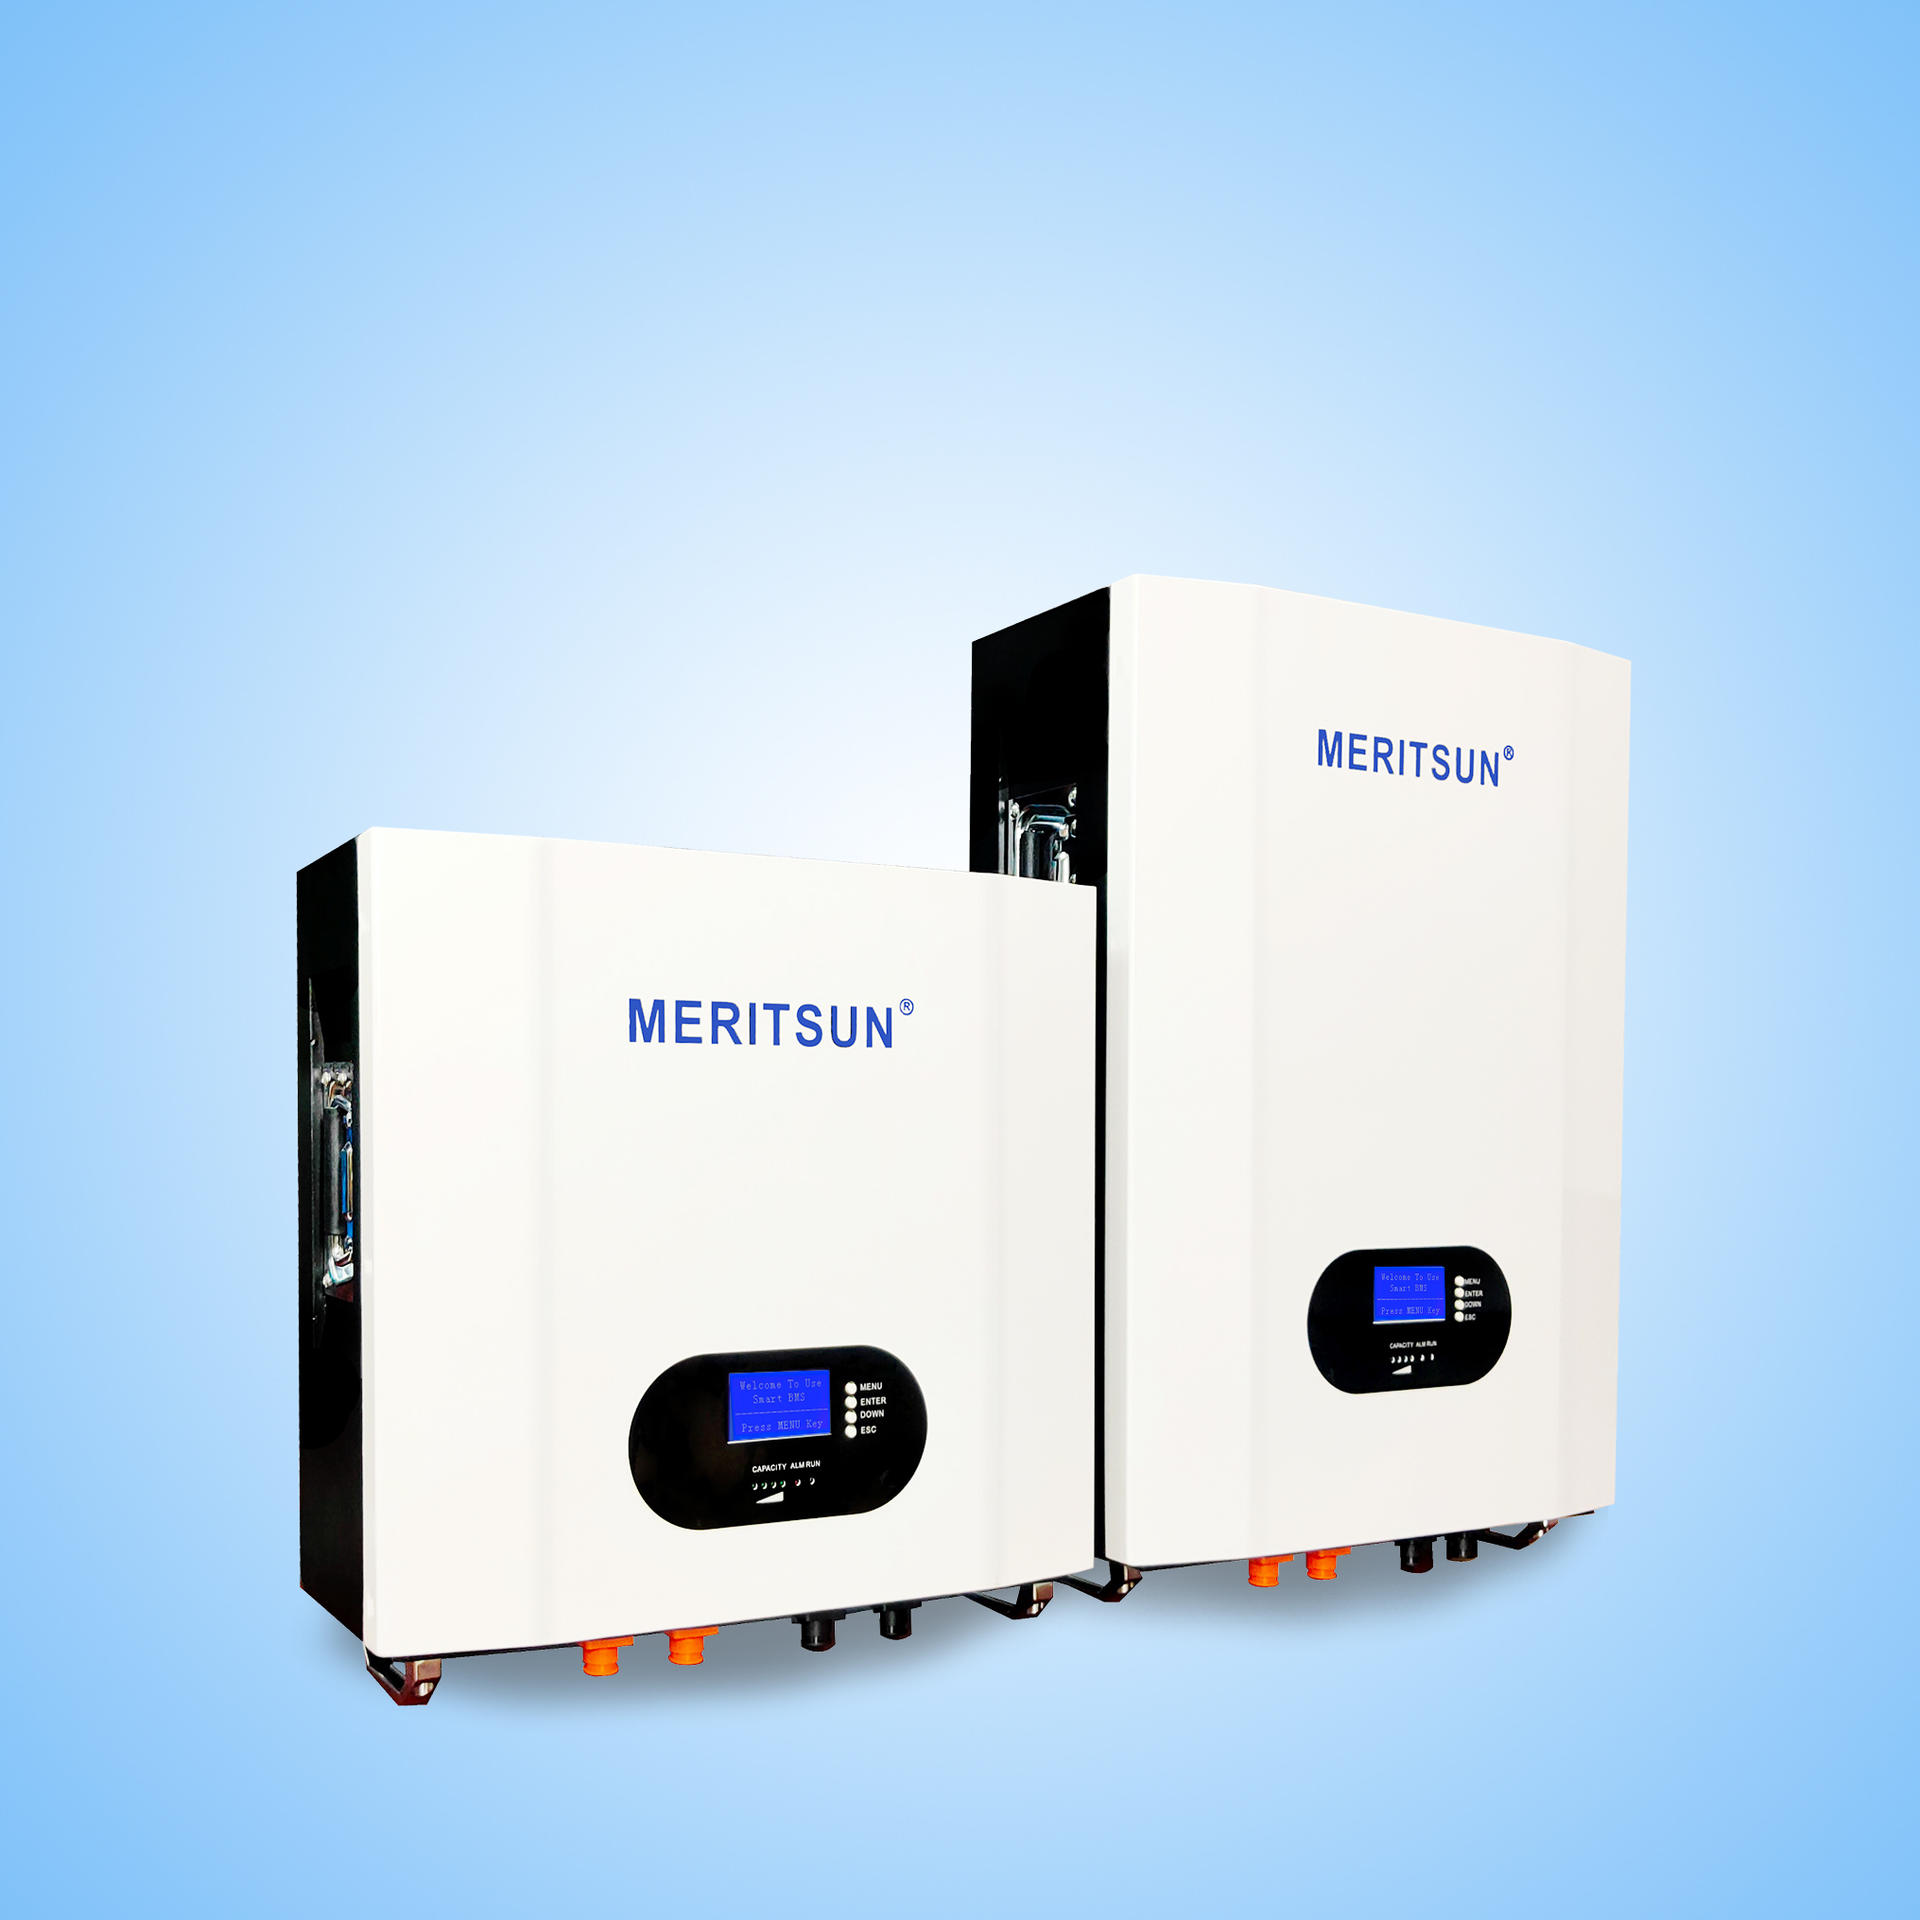 MERITSUN POWERWALL FEATURES